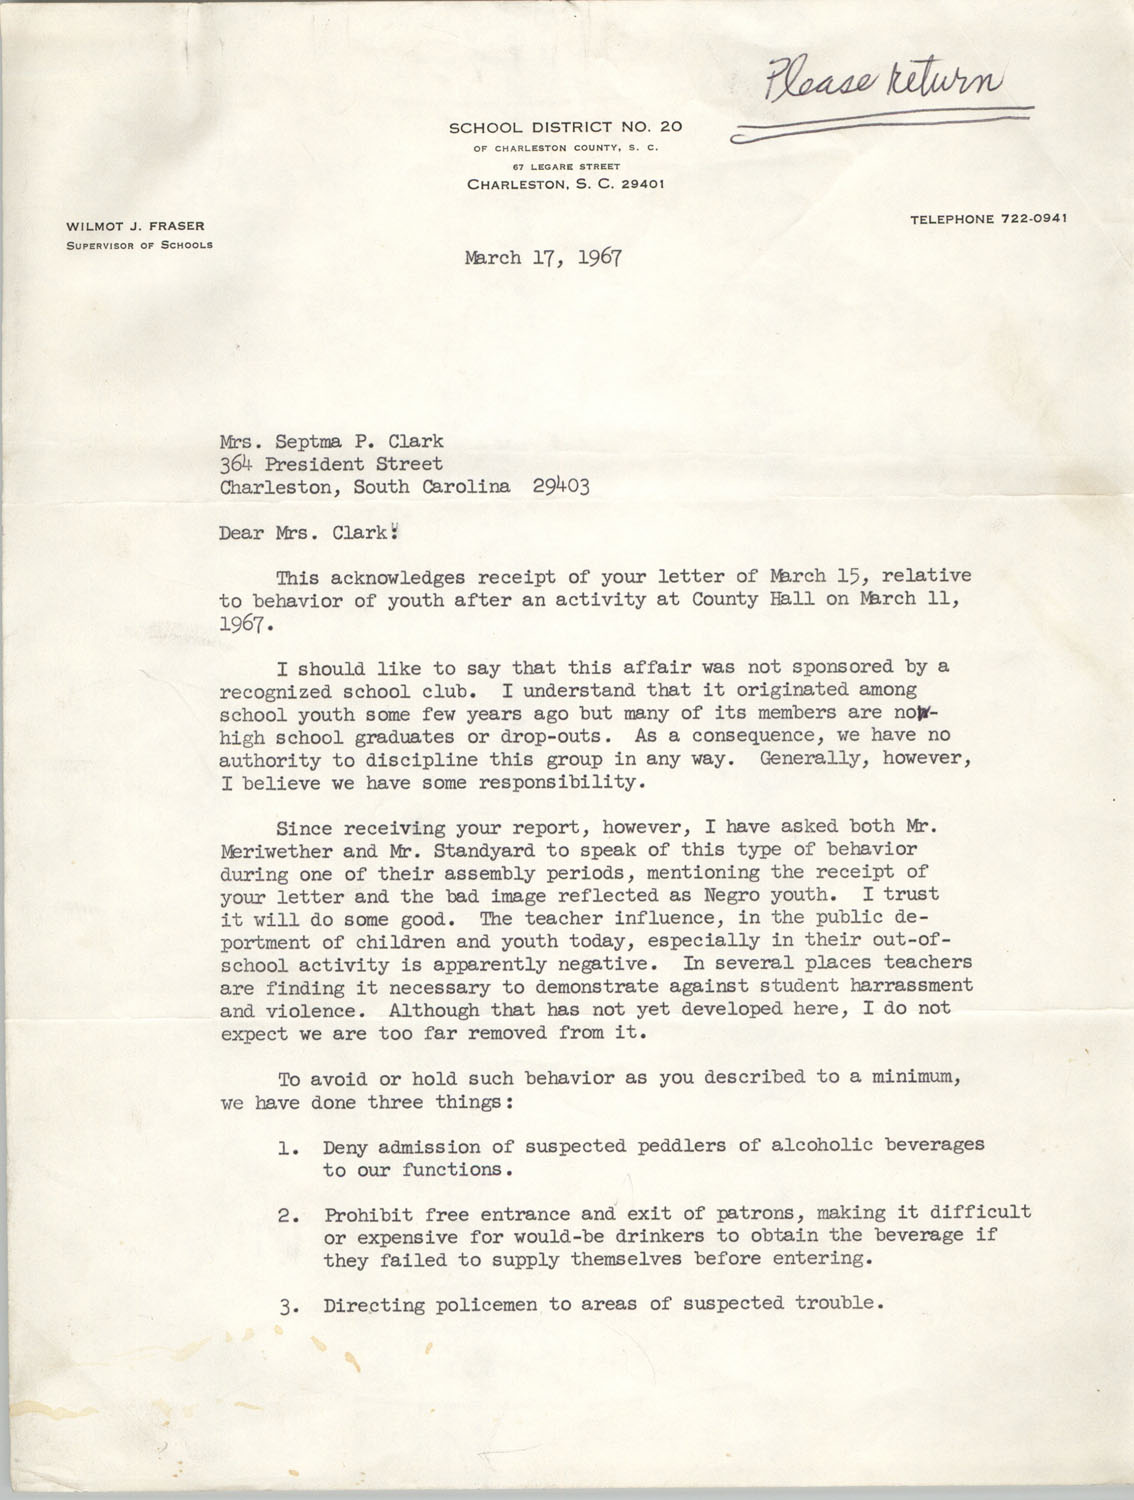 Letter from Wilmot J. Fraser to Septima P. Clark, March 17, 1967